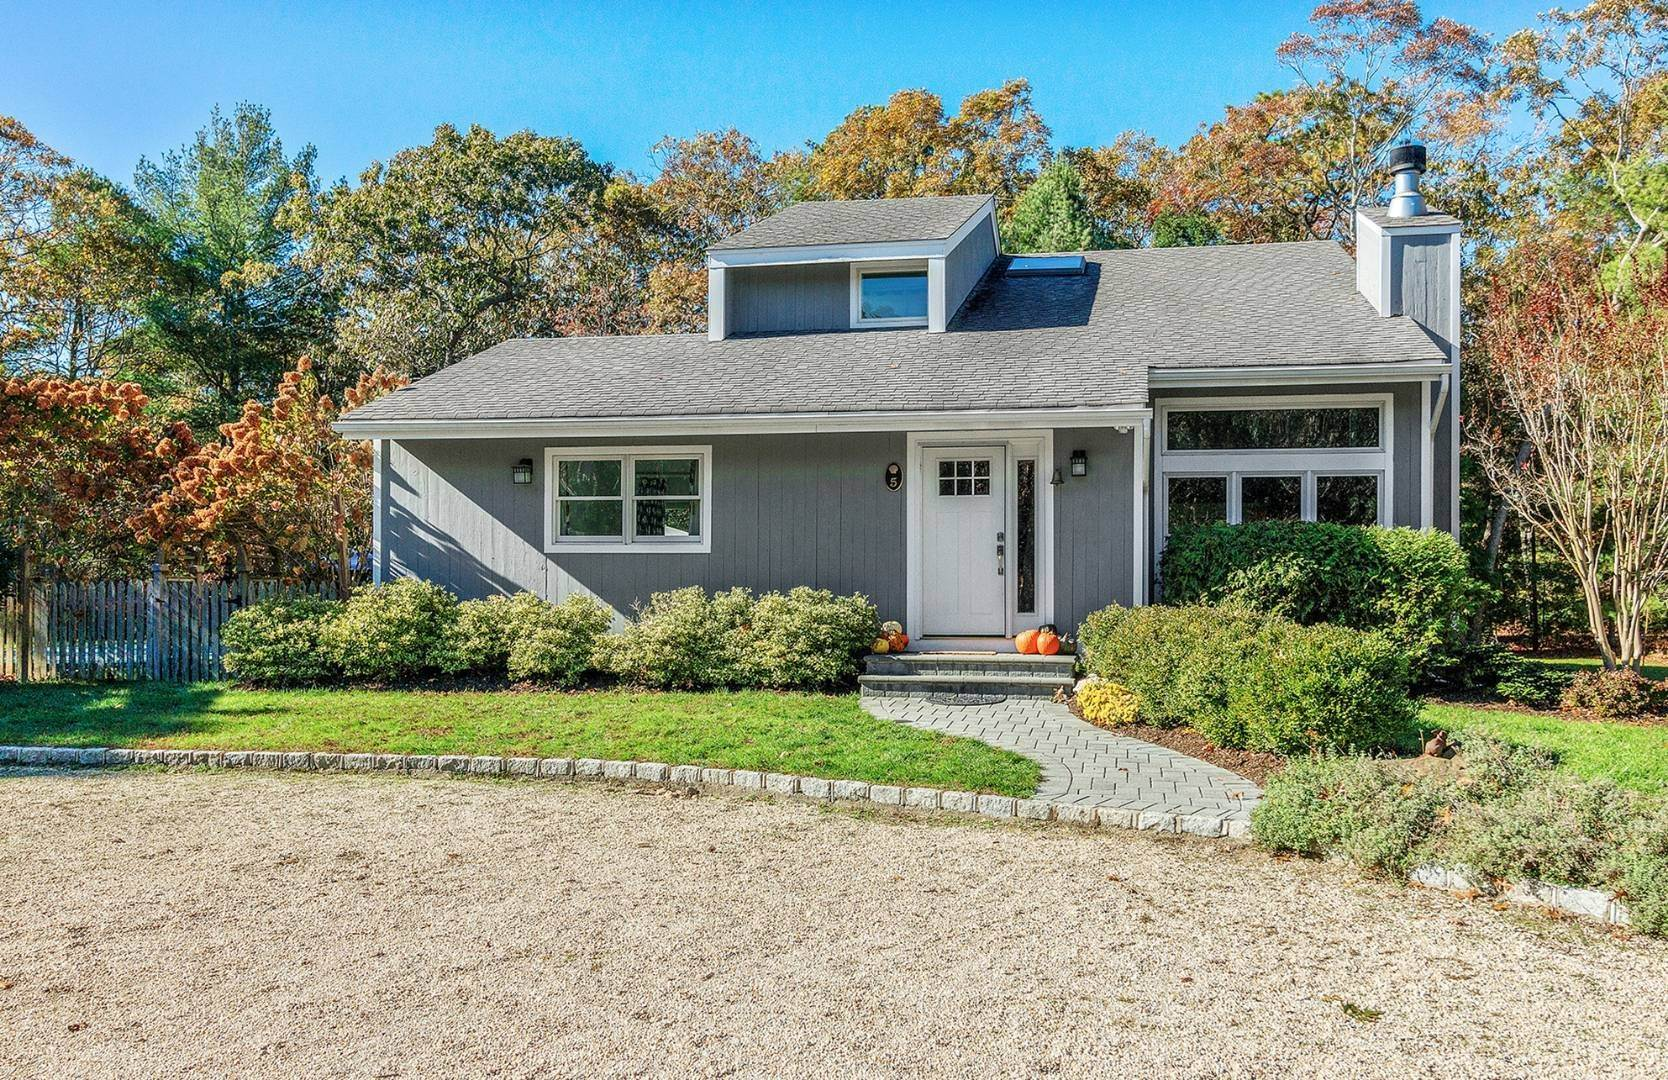 Single Family Home for Sale at Quogue Village With Pool, Move-In Ready 5 Woodland Way, Quogue Village, NY 11959